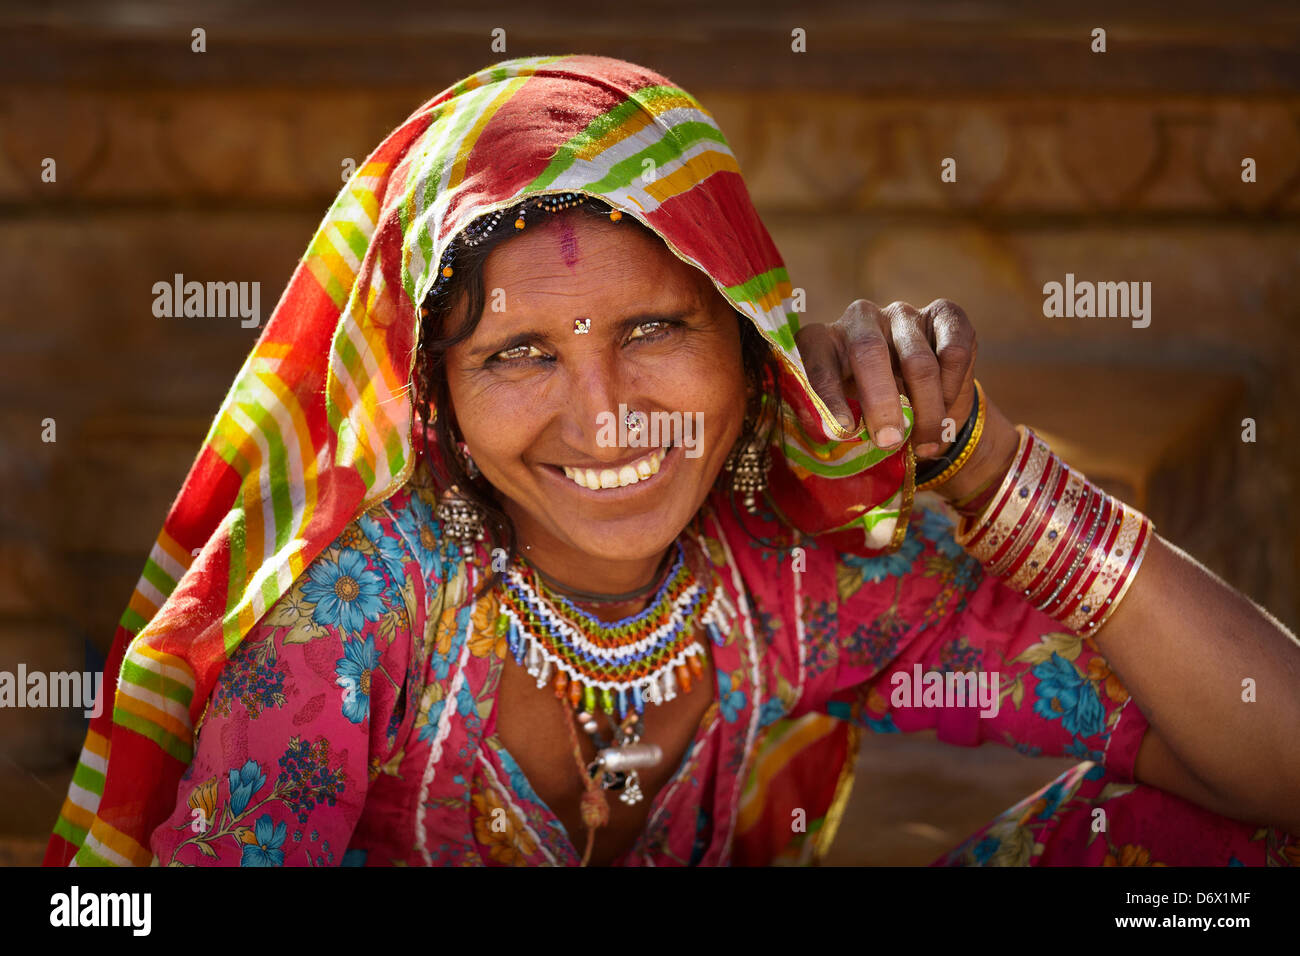 Portrait of smiling woman l'Inde, Jaisalmer, Rajasthan, India Banque D'Images